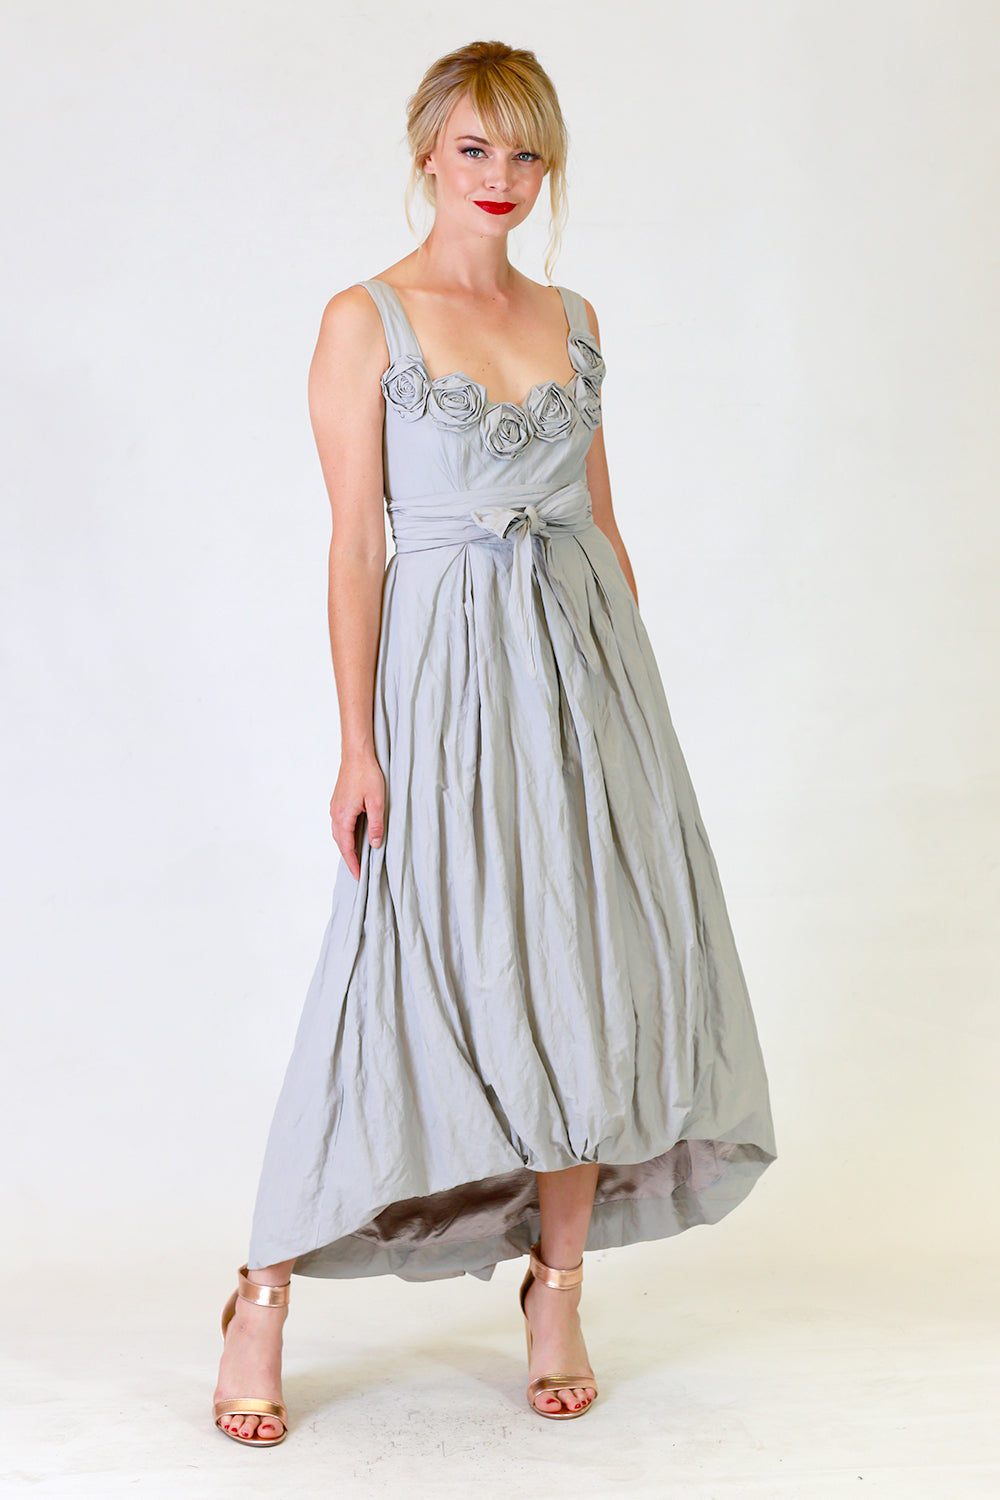 Stephana Tin Rose Dress, Annah Stretton Bridal, Grey Wedding Dress, Shot on Model